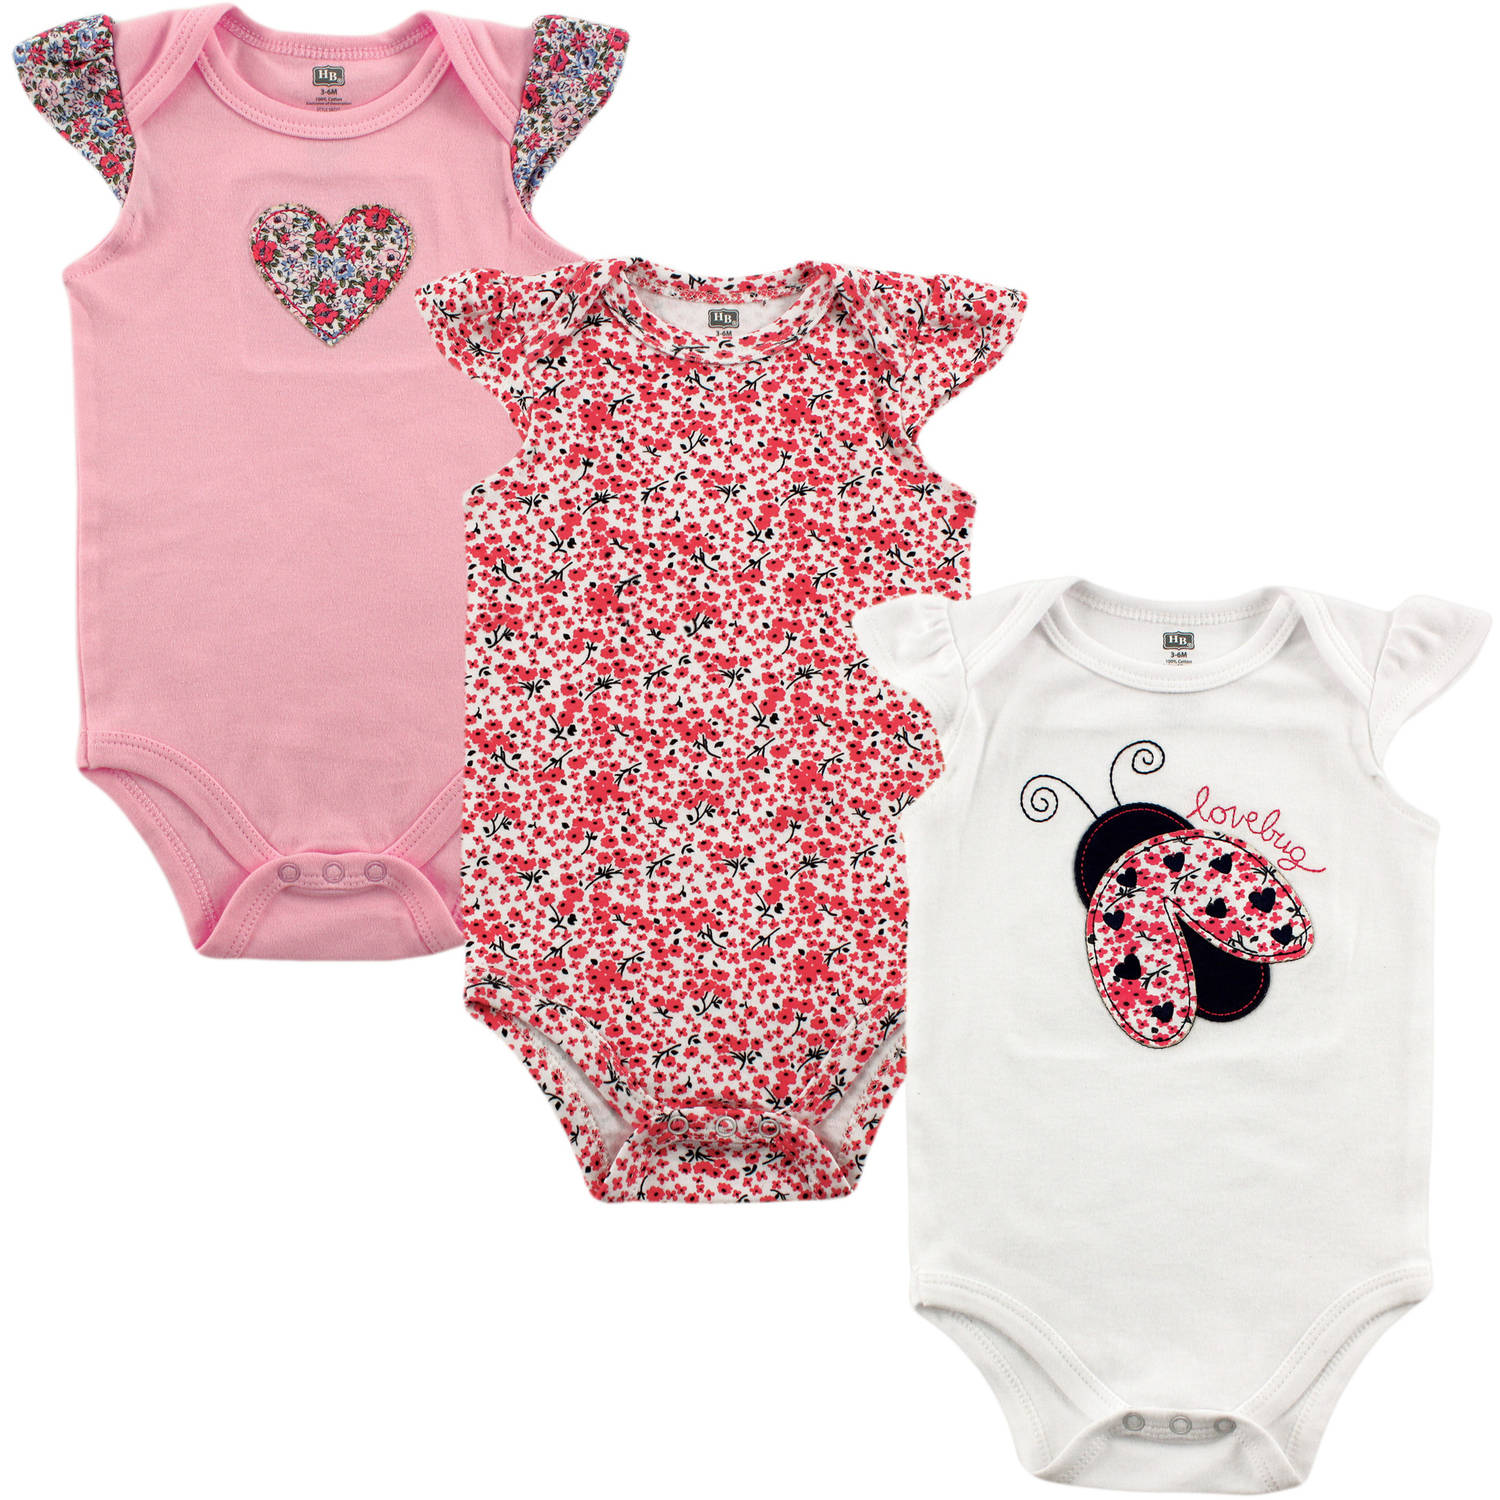 Hudson Baby Girl Cap-Sleeve Bodysuits, 3-Pack